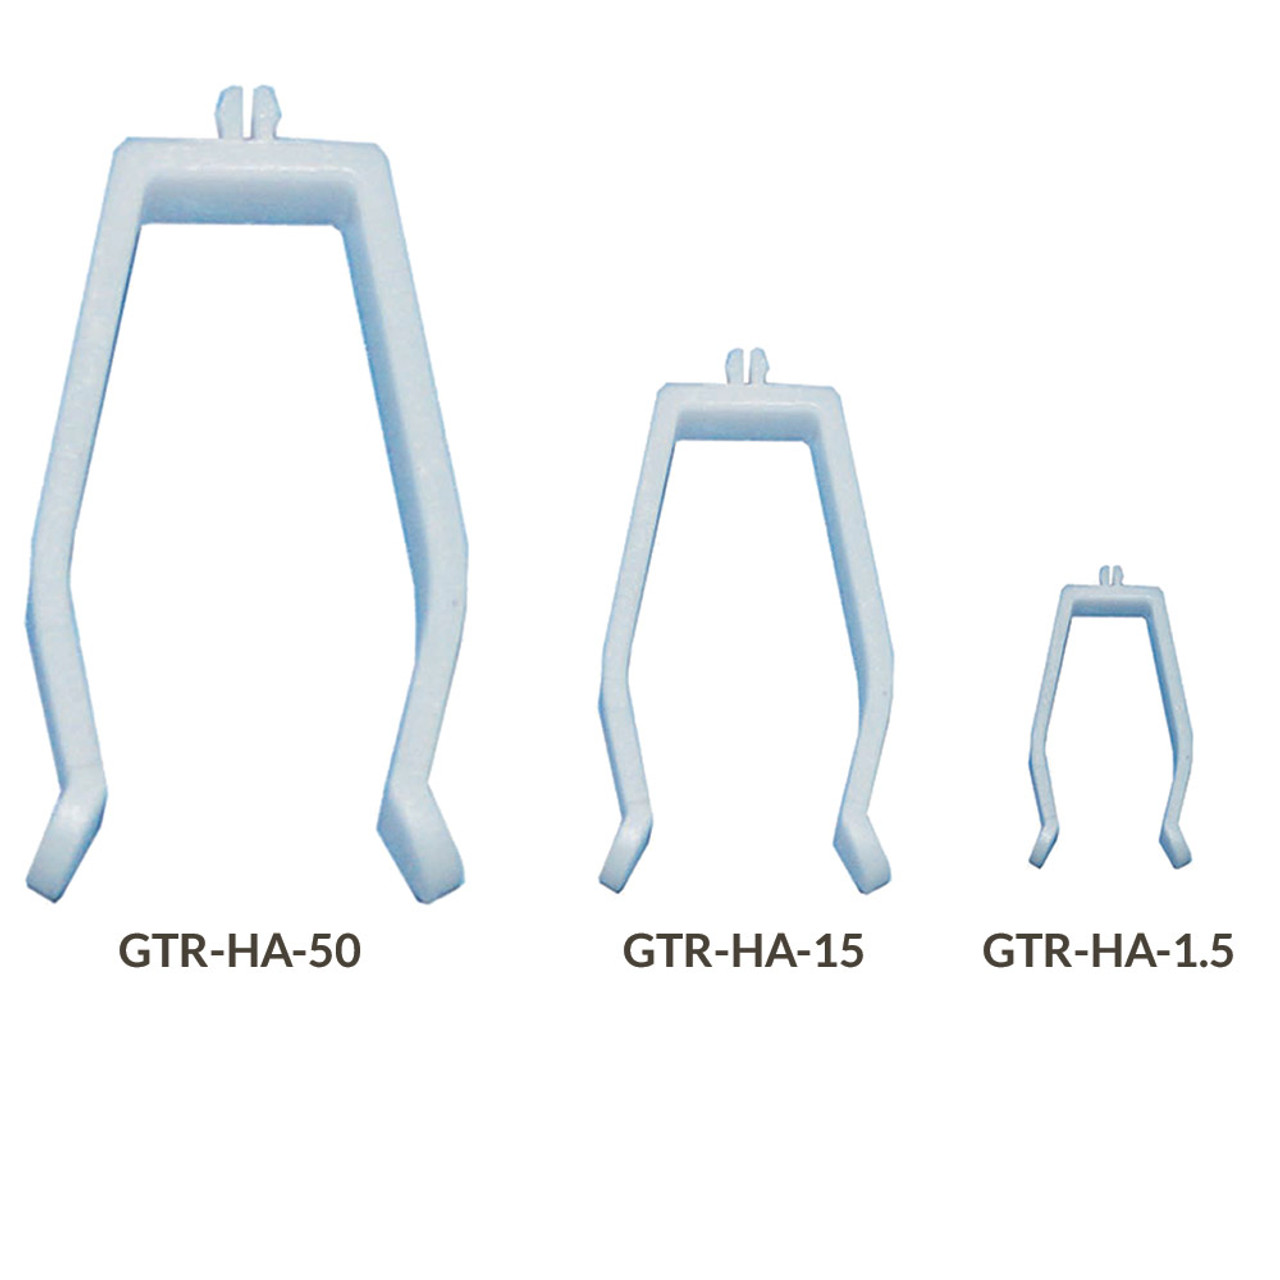 GTR-HA Tube Rotator Clips